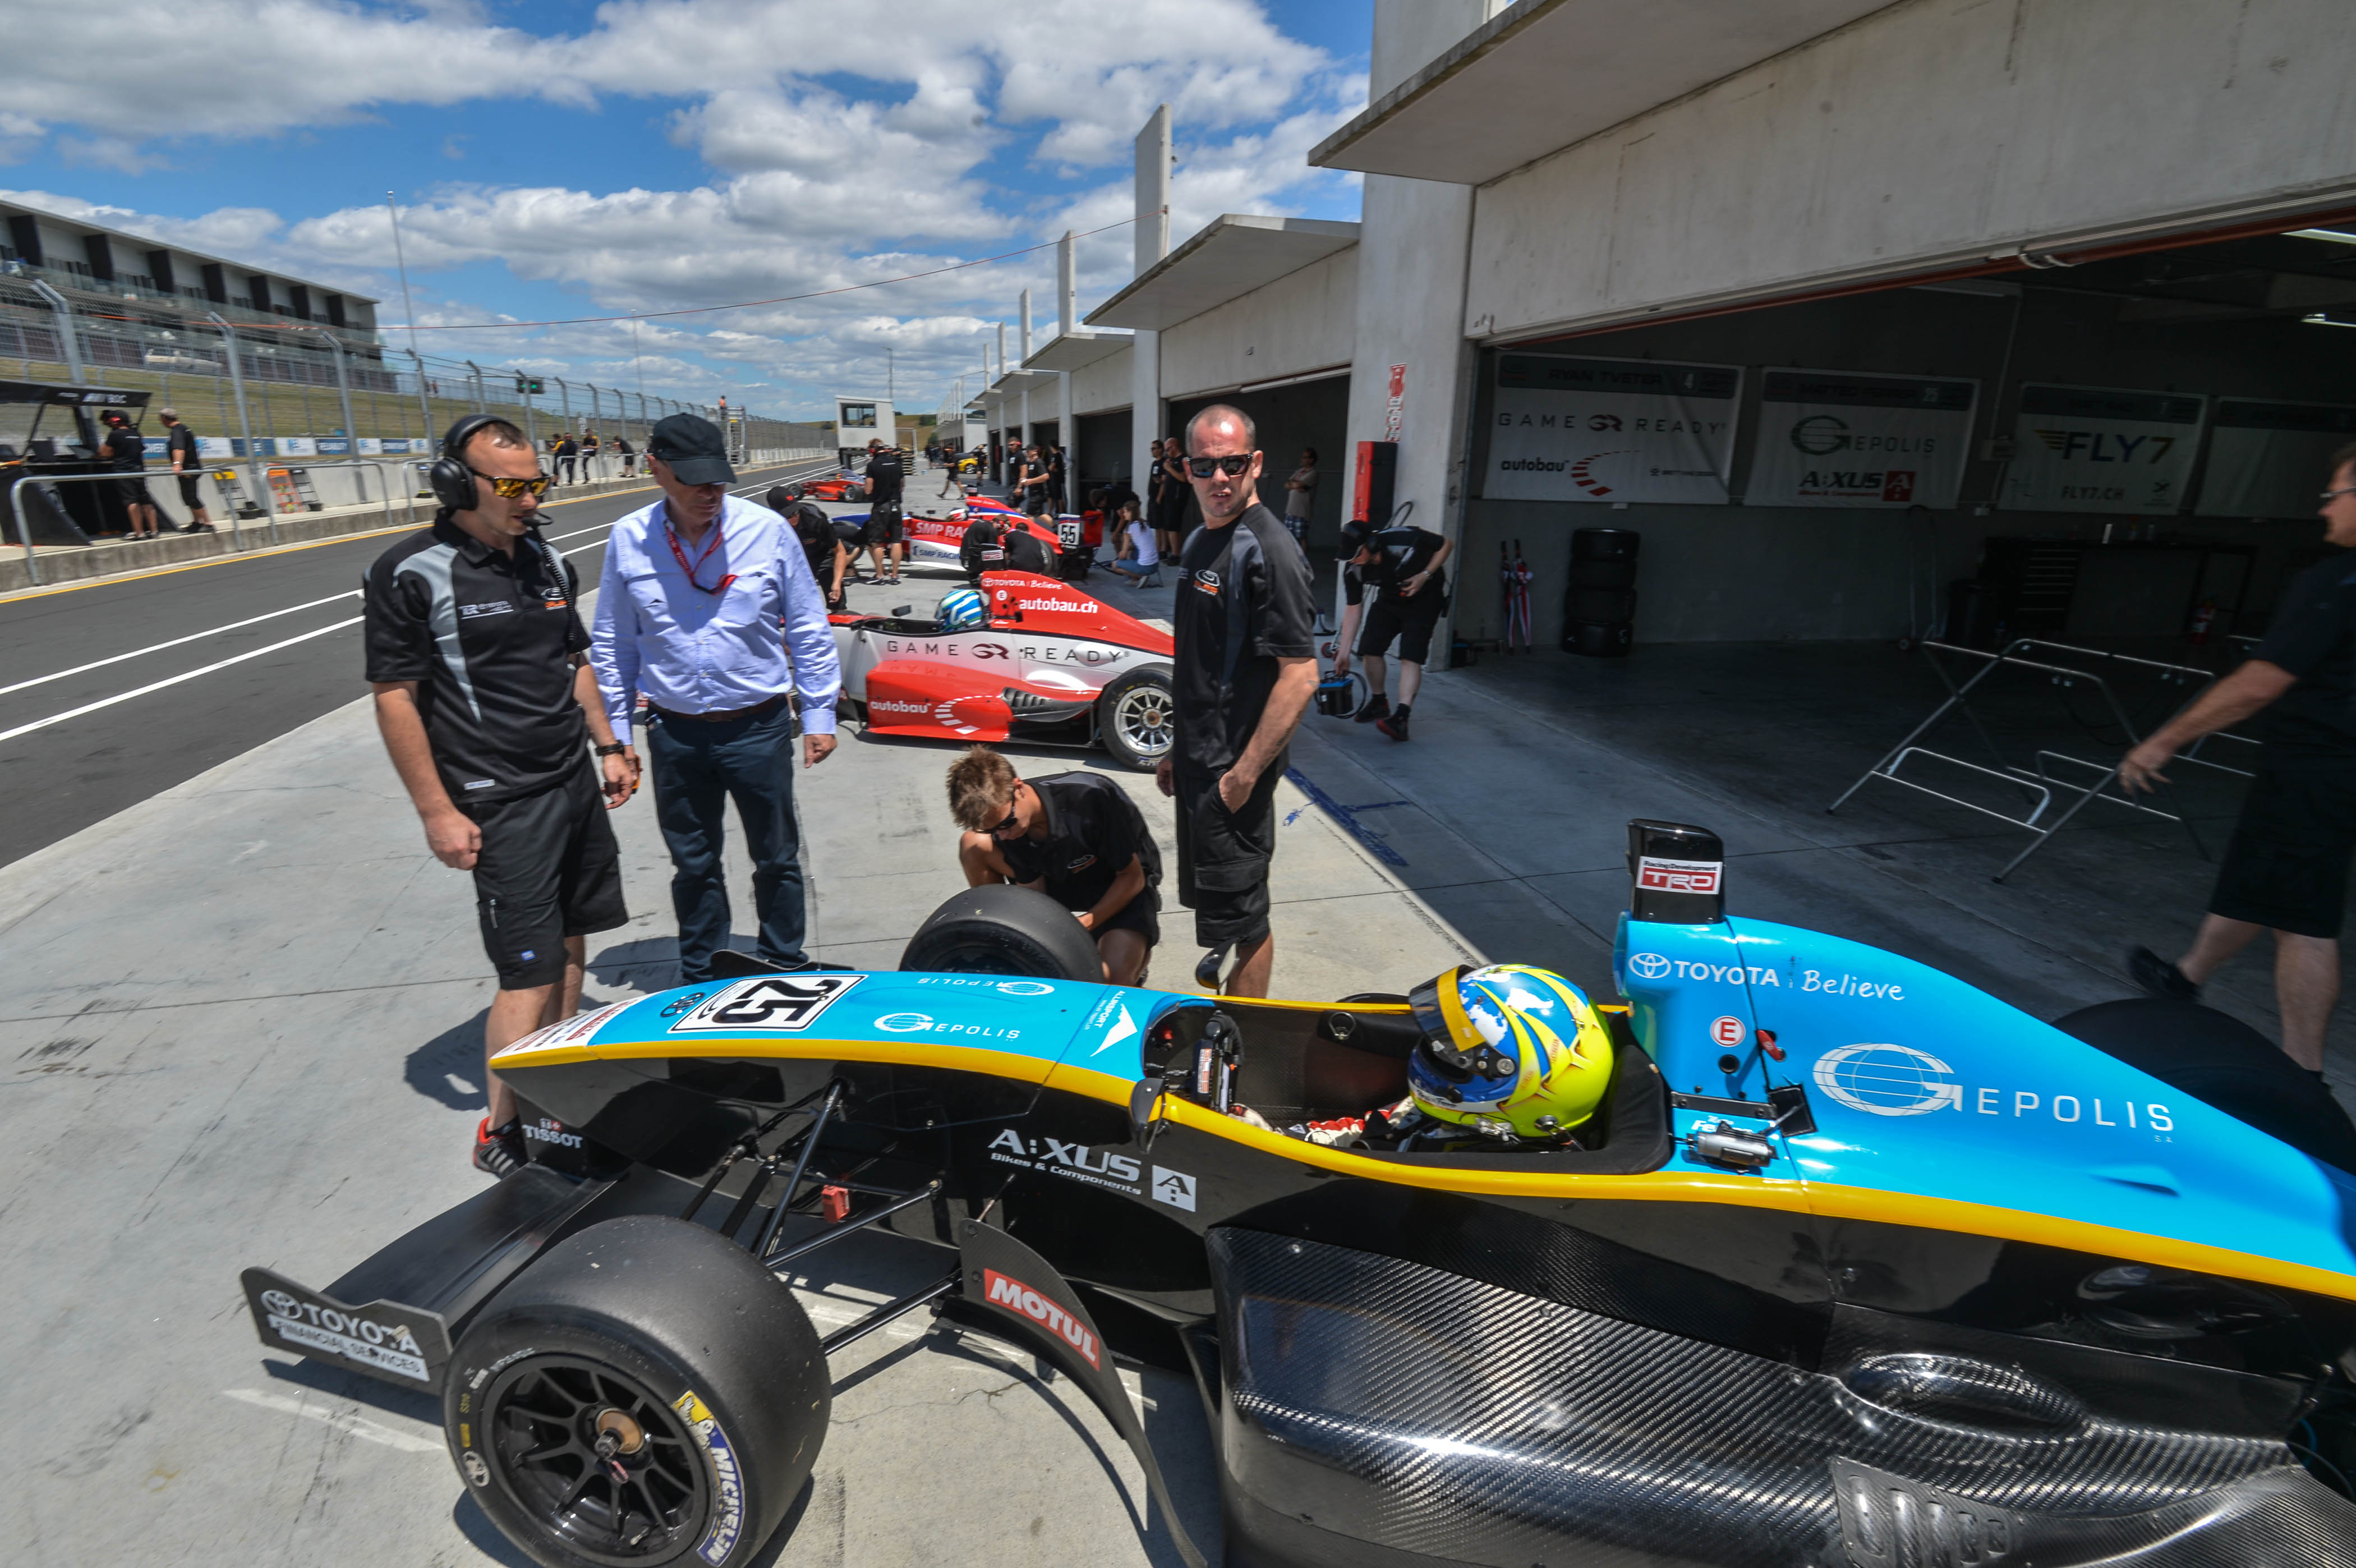 TRS 2014 image by Bruce Jenkins-1492